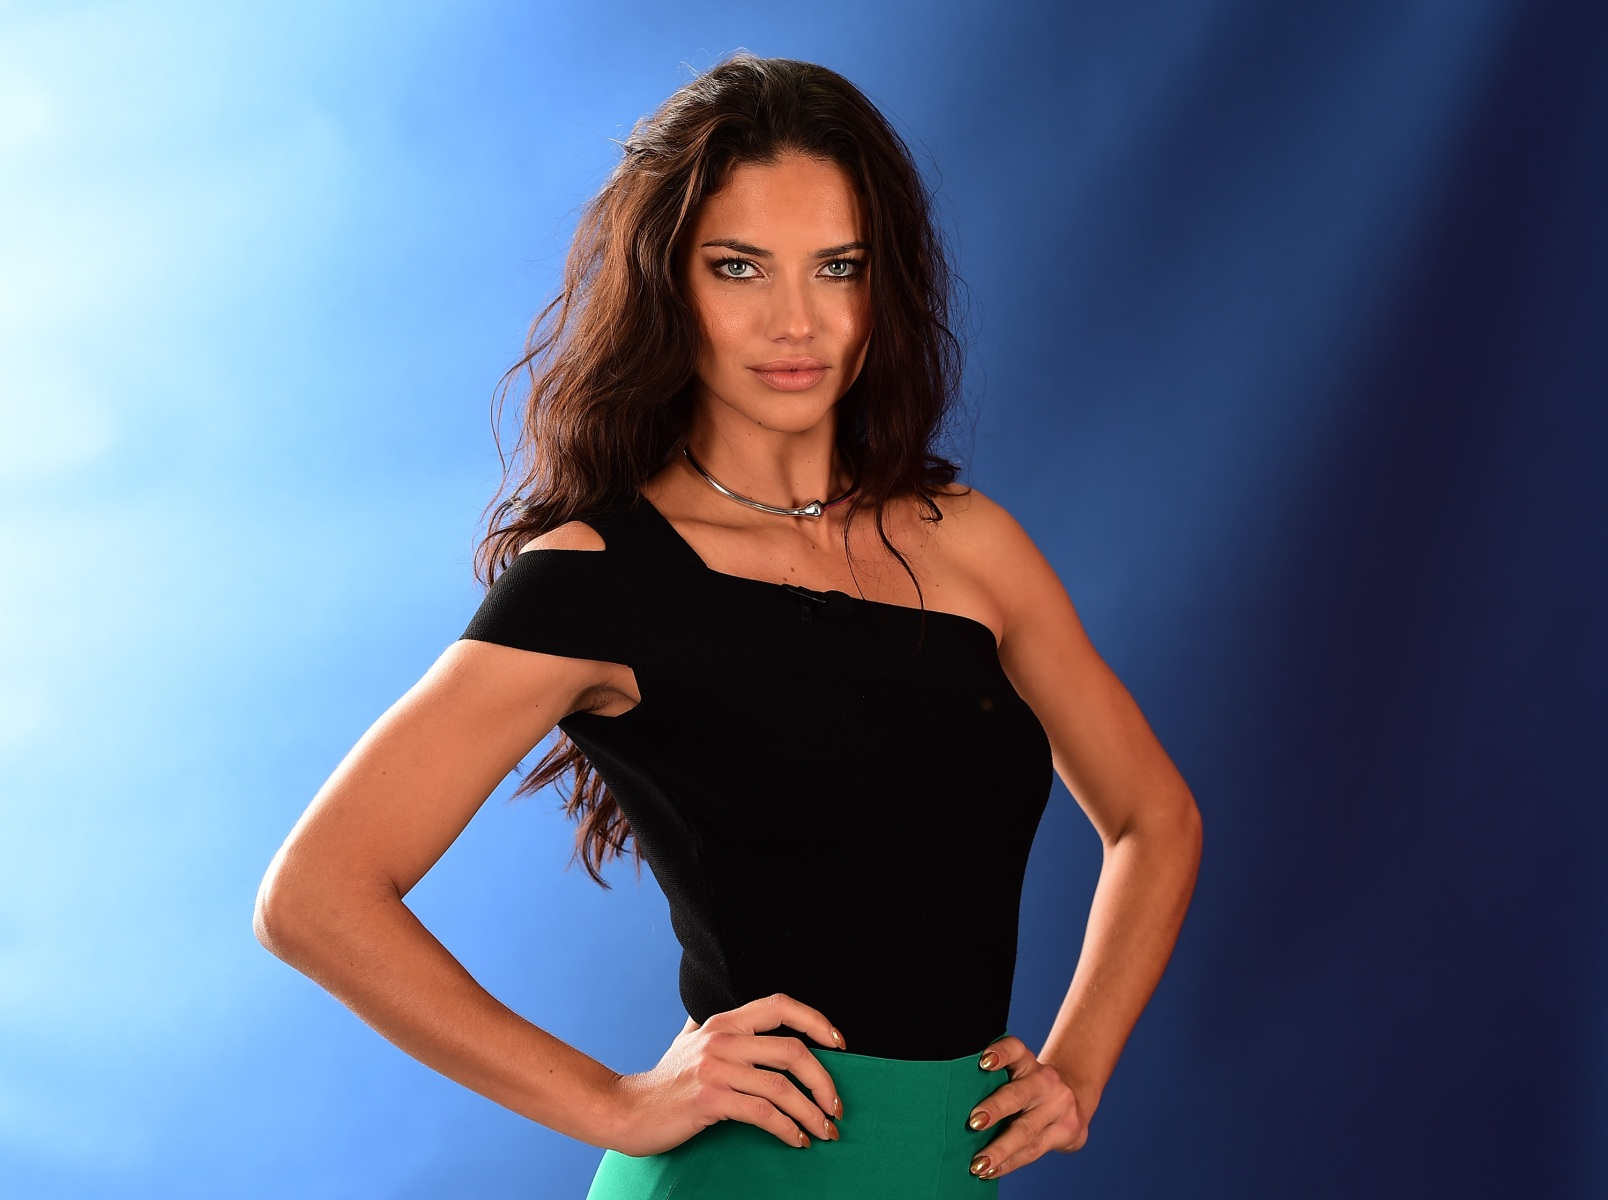 Model Adriana Lima poses for a photo on the NBC Today show set on Copacabana Beach on August 8, 2016 in Rio de Janeiro, Brazil.  (Photo by Harry How/Getty Images)